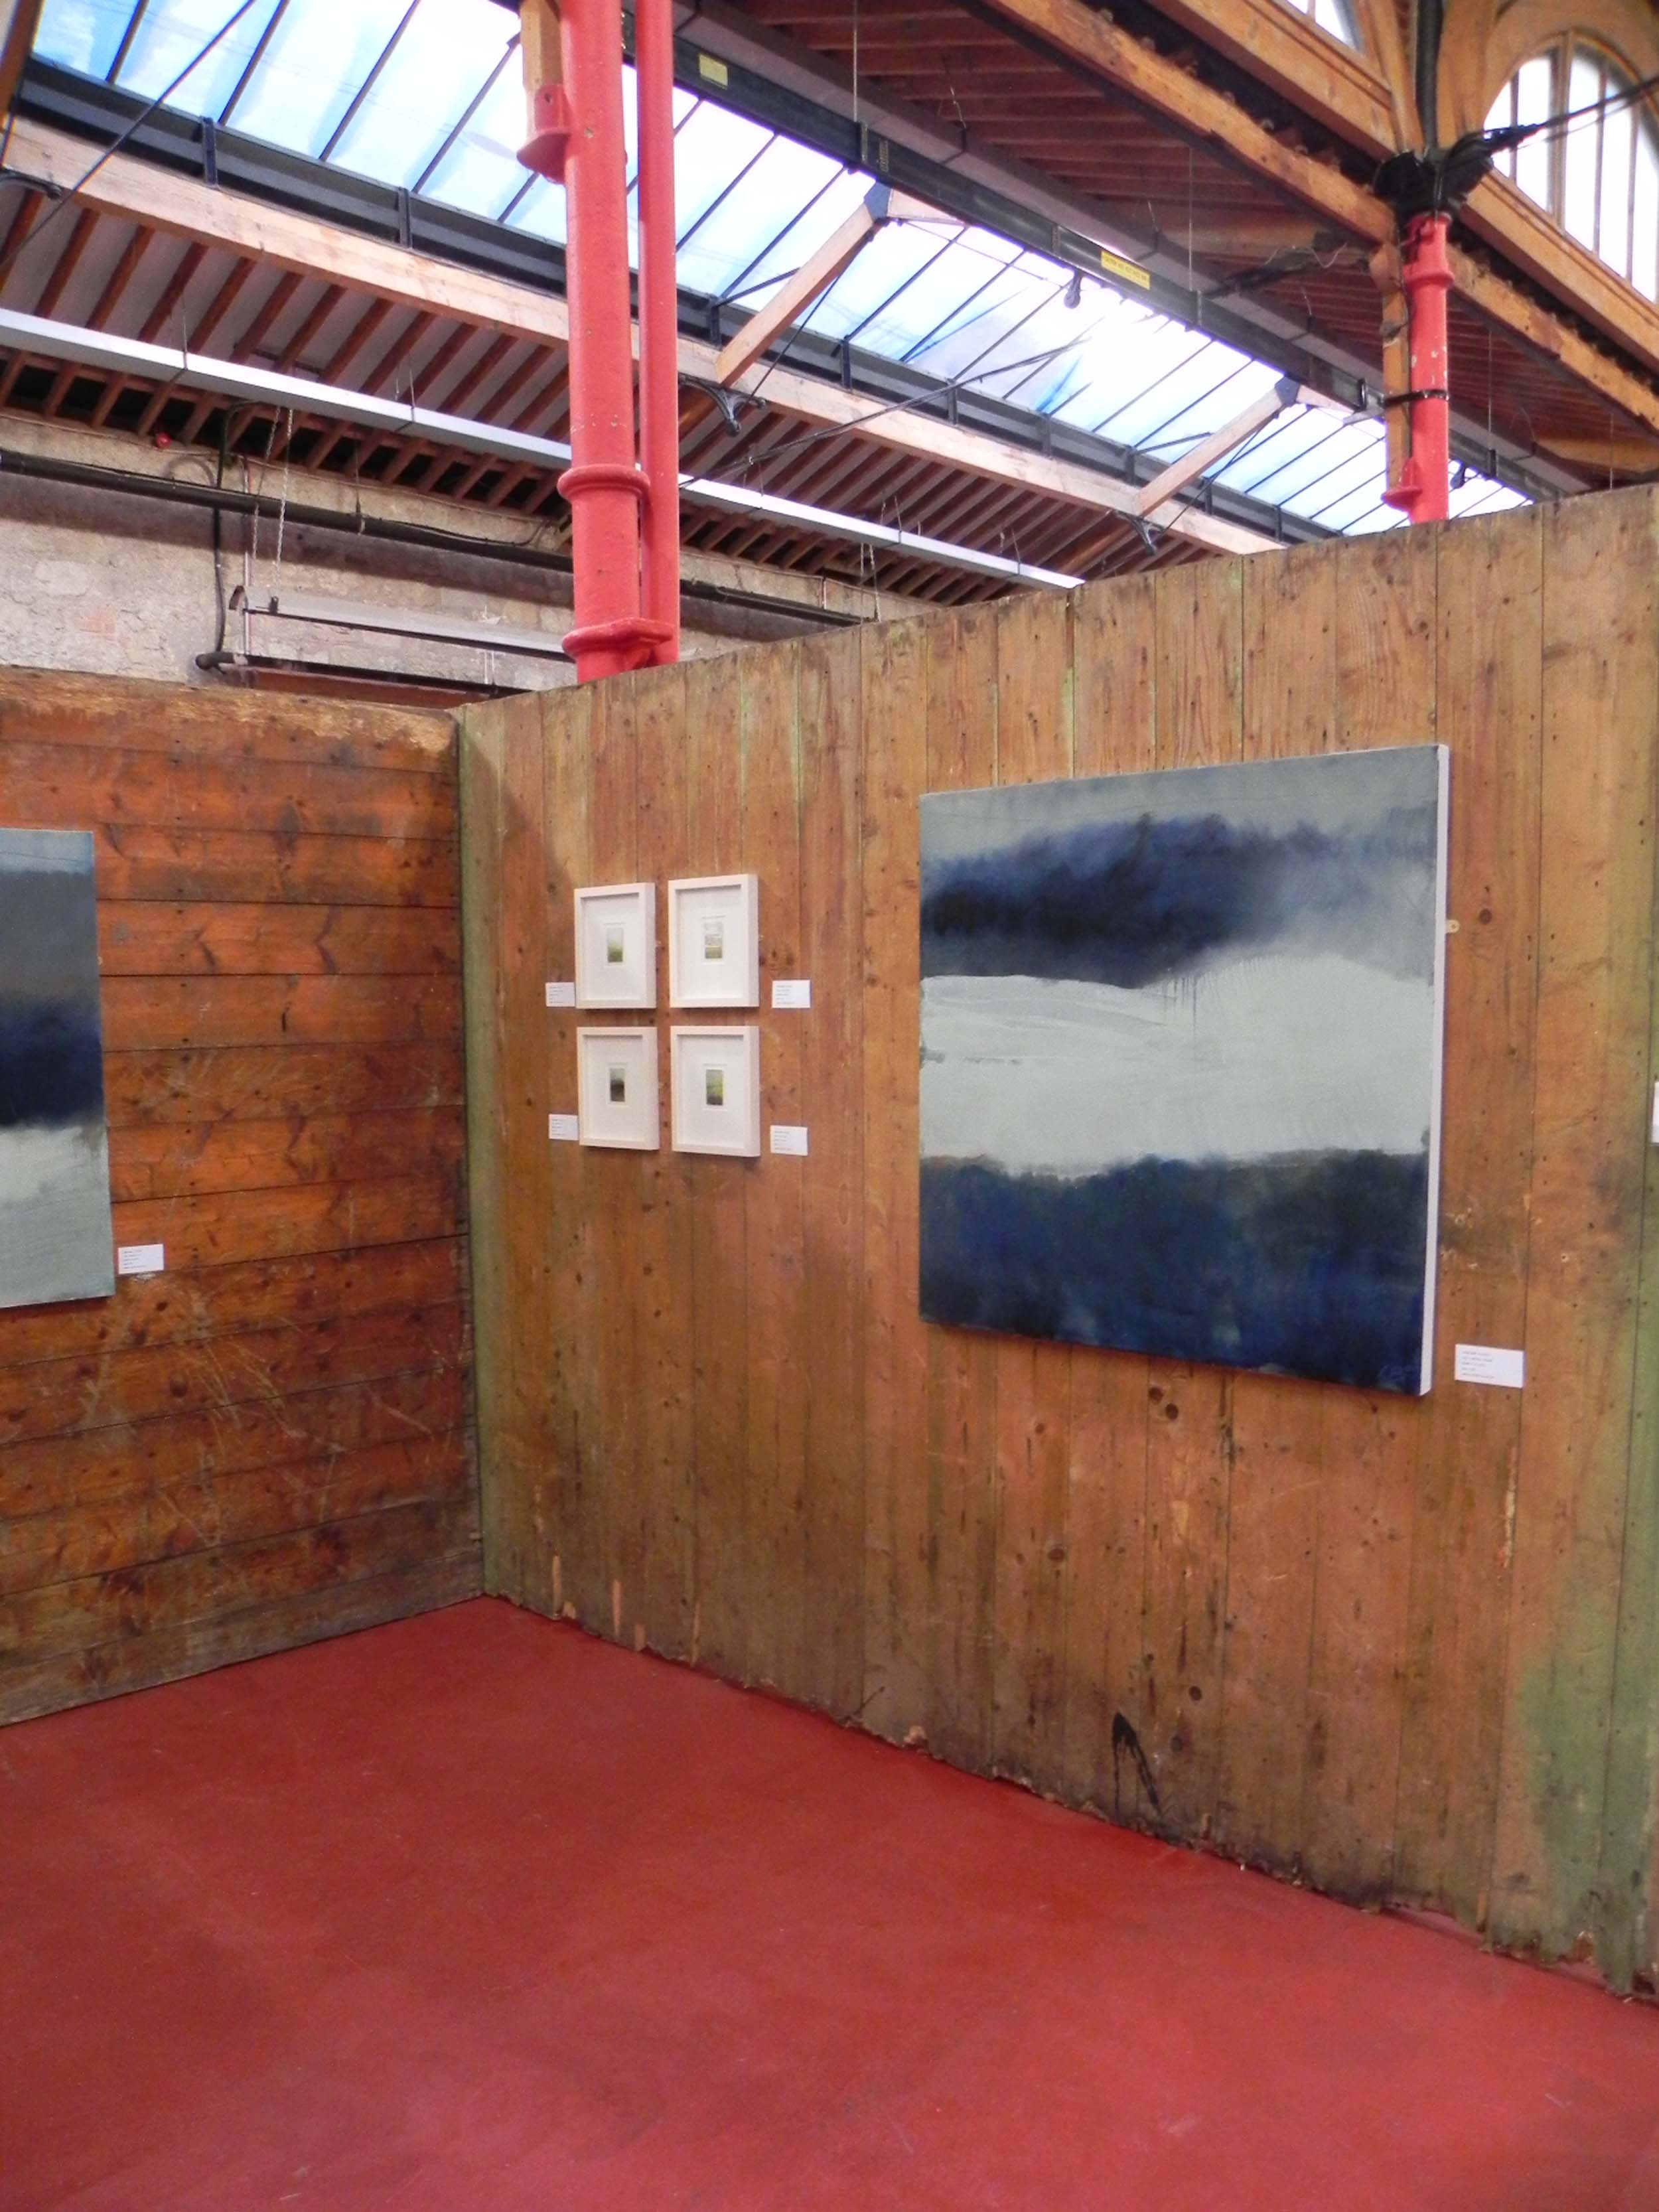 Installation view from CCA:RDS 2010